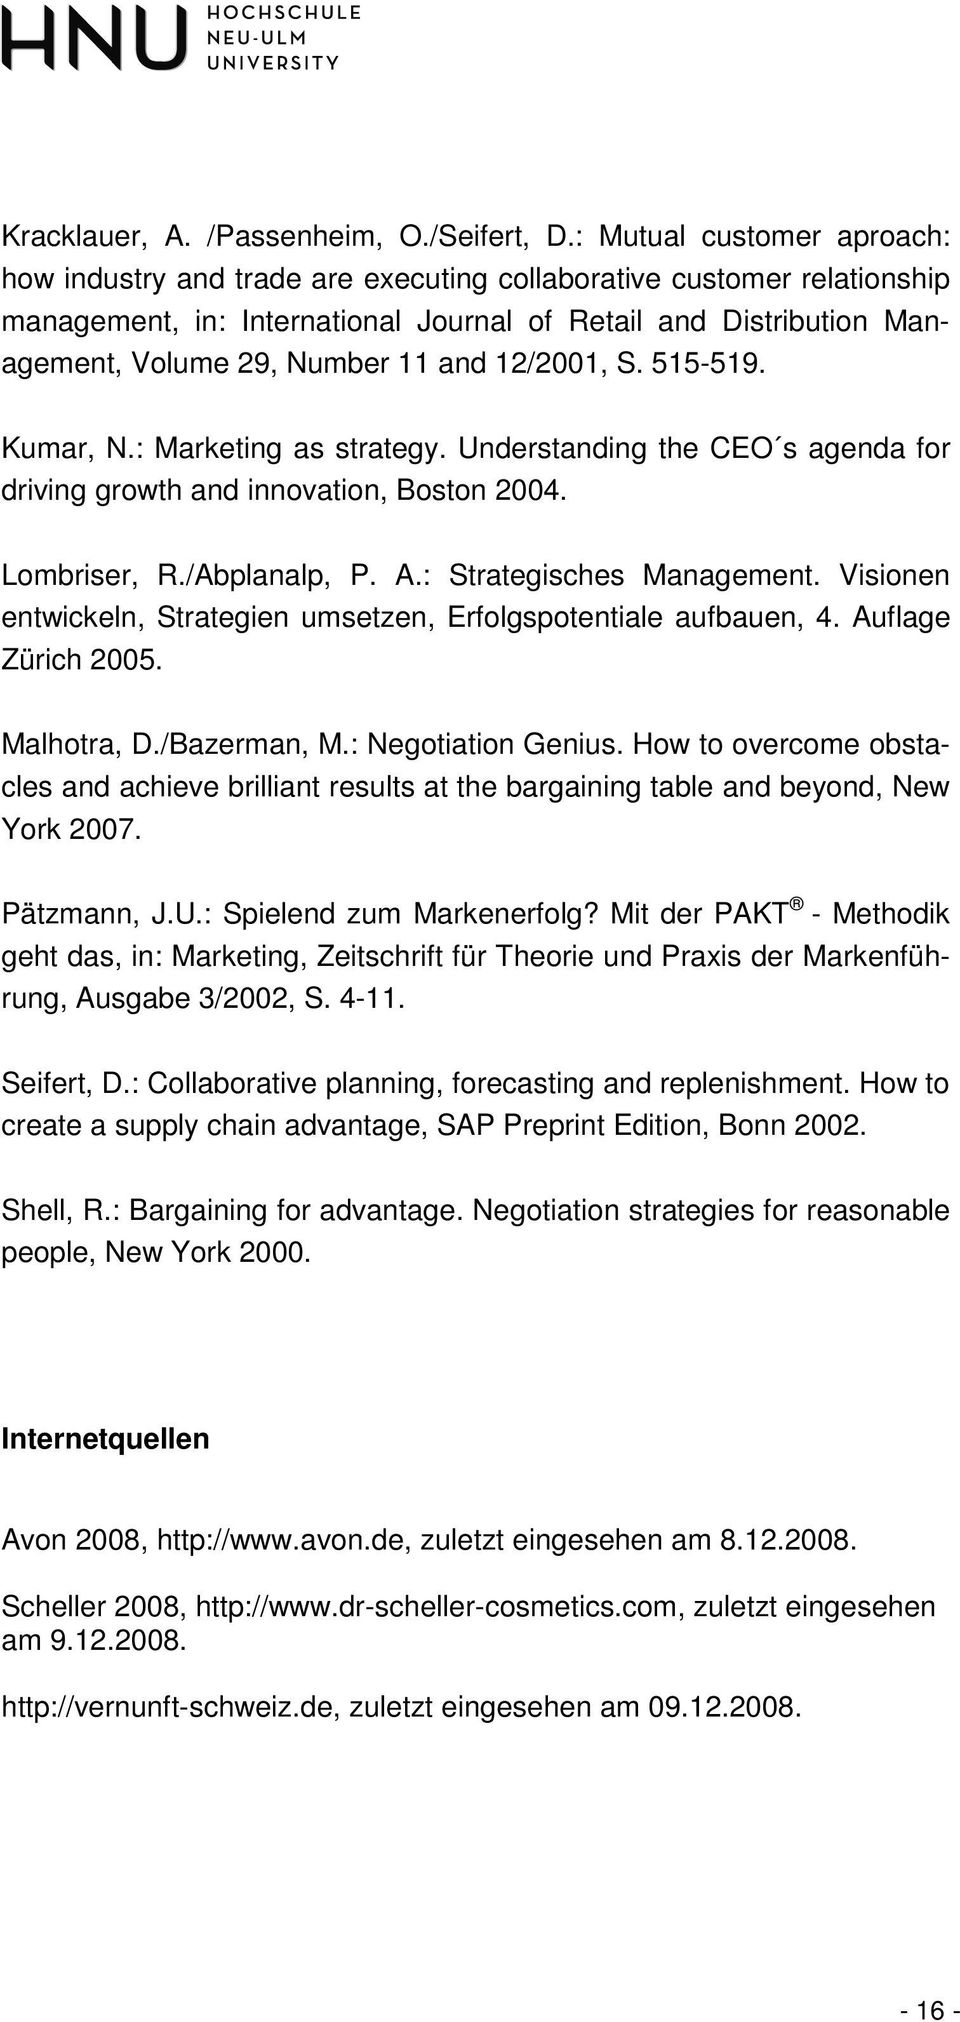 and 12/2001, S. 515-519. Kumar, N.: Marketing as strategy. Understanding the CEO s agenda for driving growth and innovation, Boston 2004. Lombriser, R./Abplanalp, P. A.: Strategisches Management.